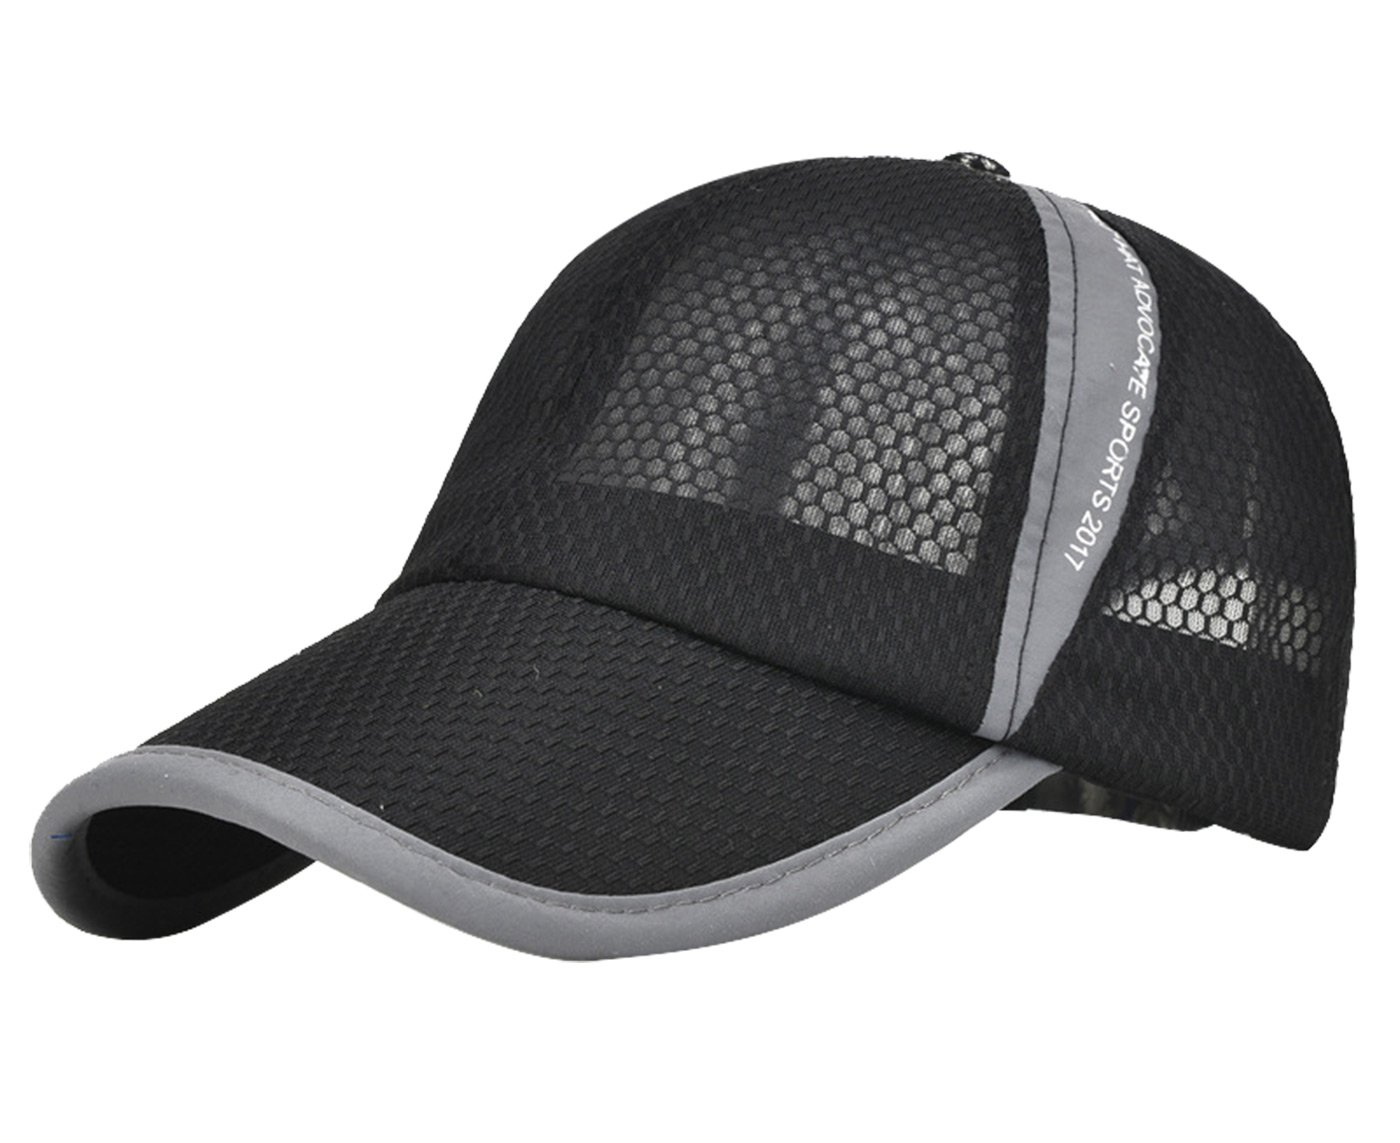 Men's Women's Peaked Mesh Sunscreen Cap Sports Hats for Fishing Tennis Baseball Beach Board Running Hiking Travelling Outdoor Light Black